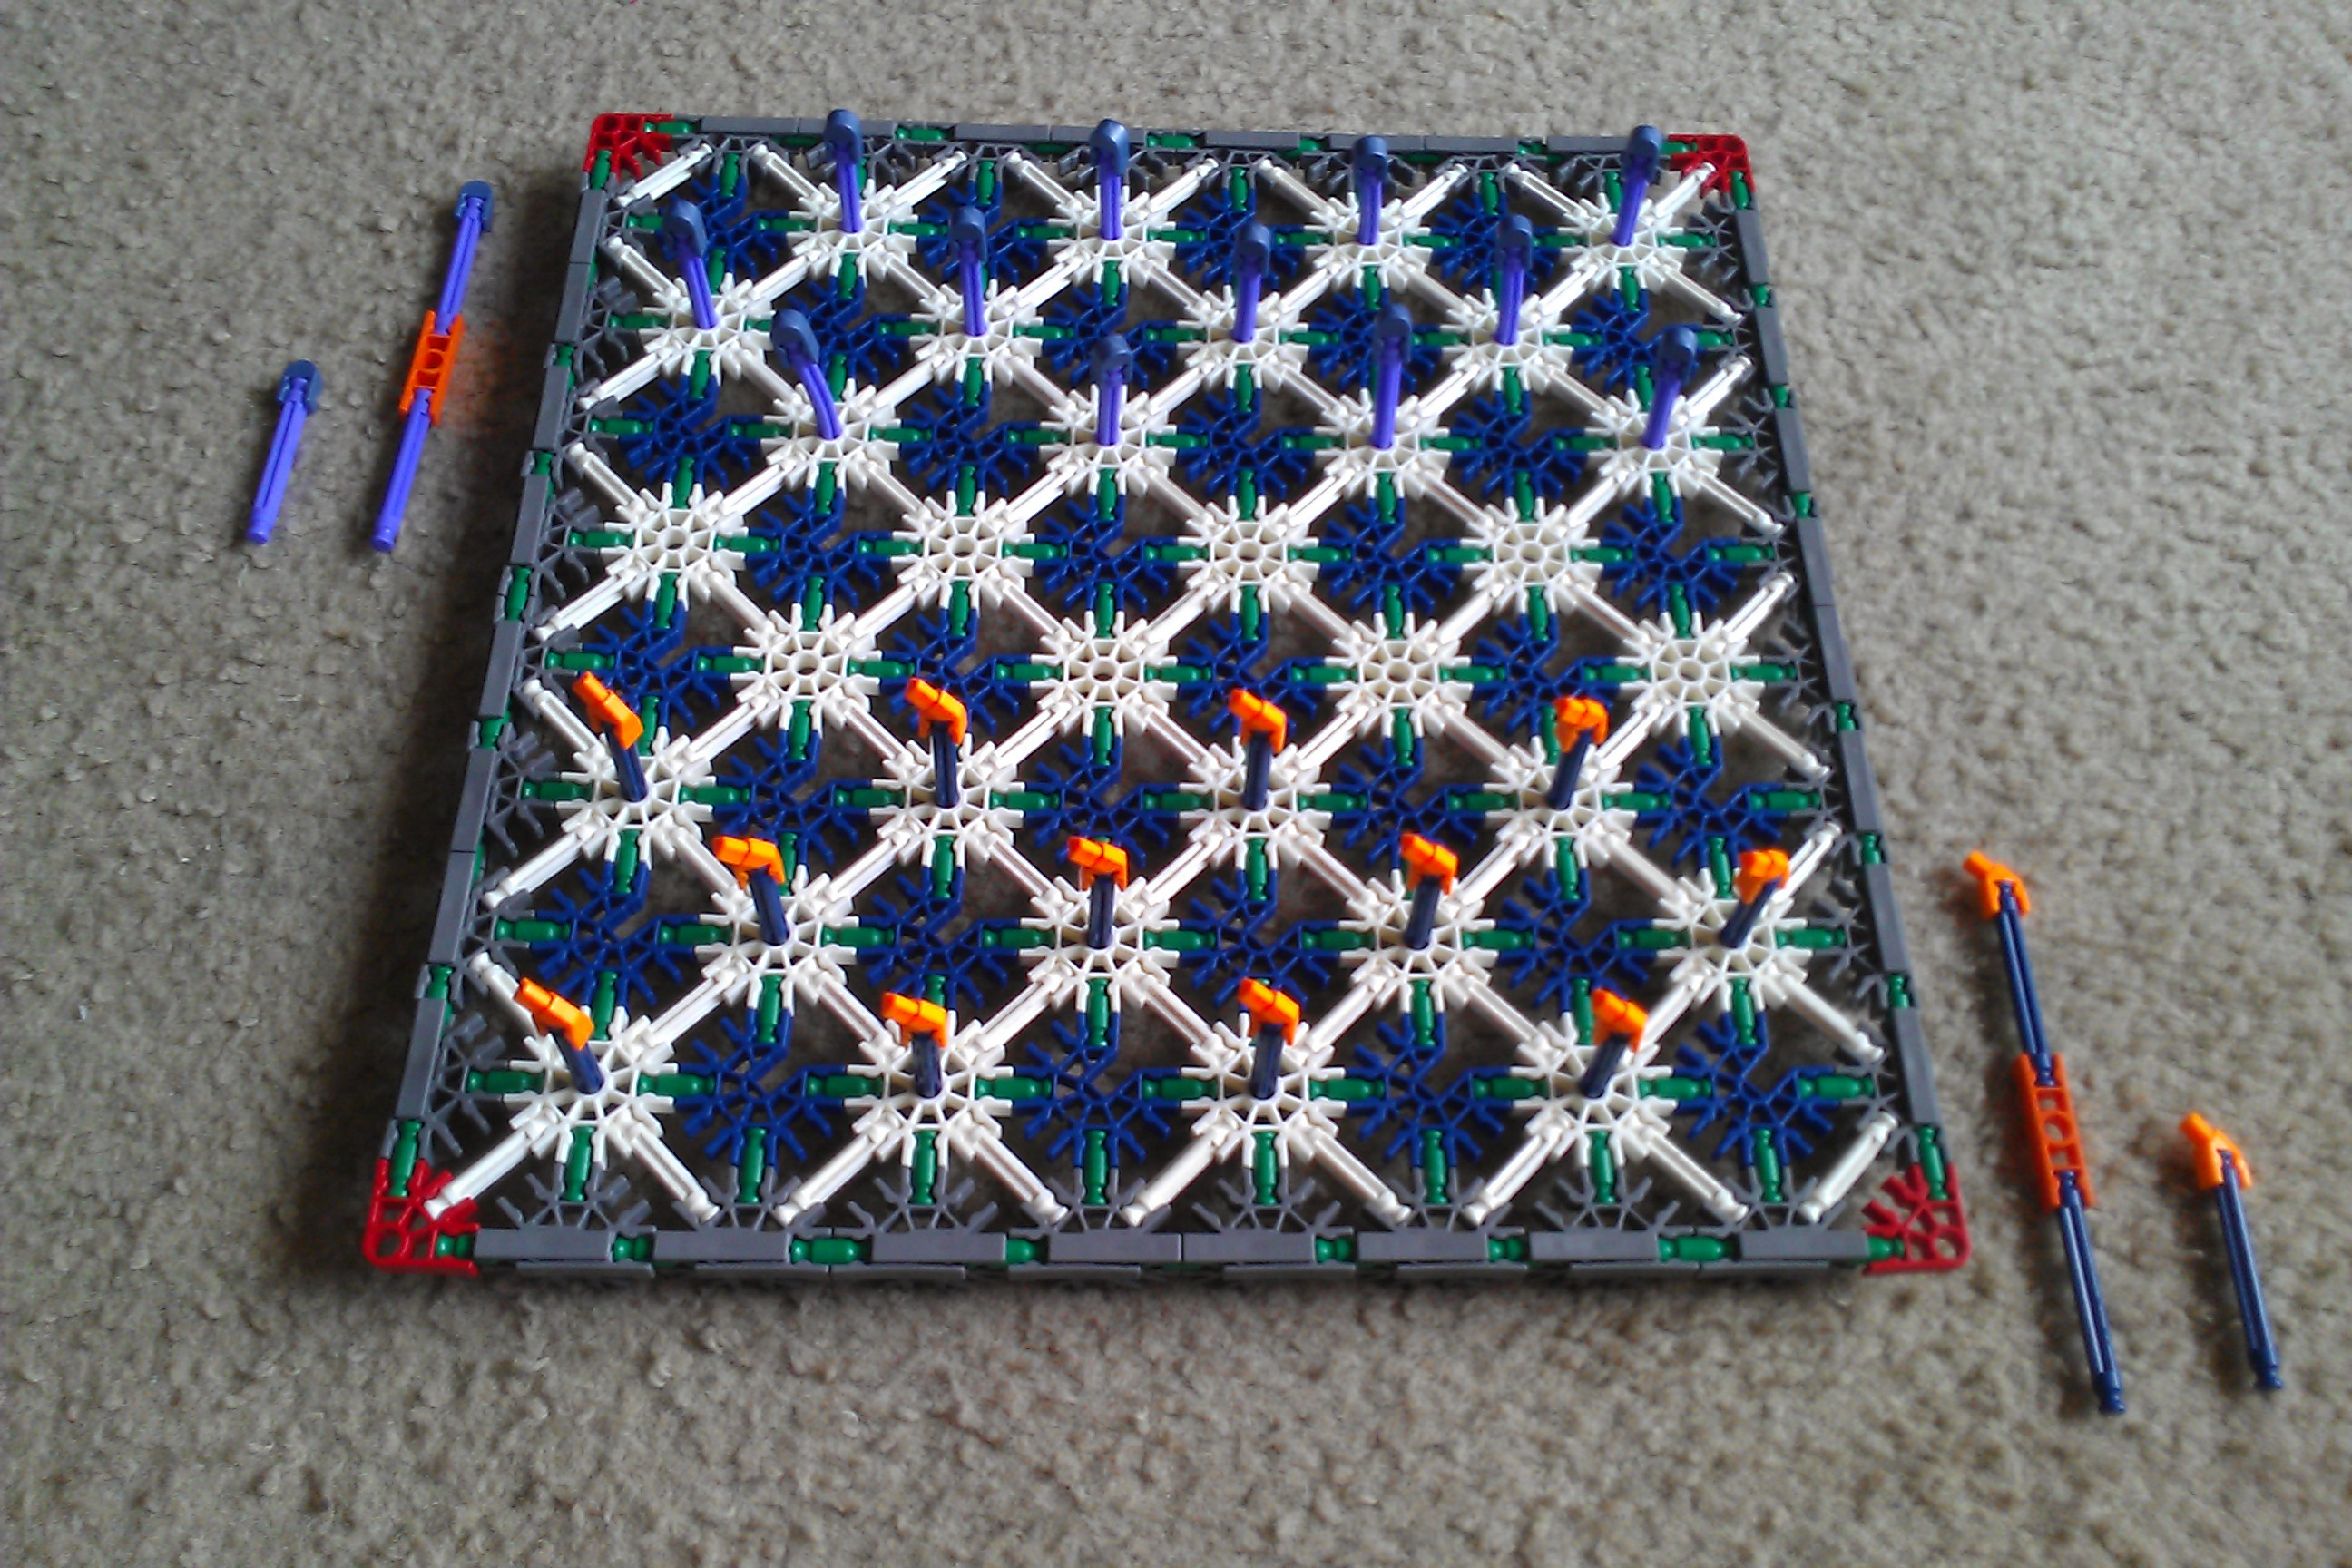 Picture of Checkers: K'nex Style!